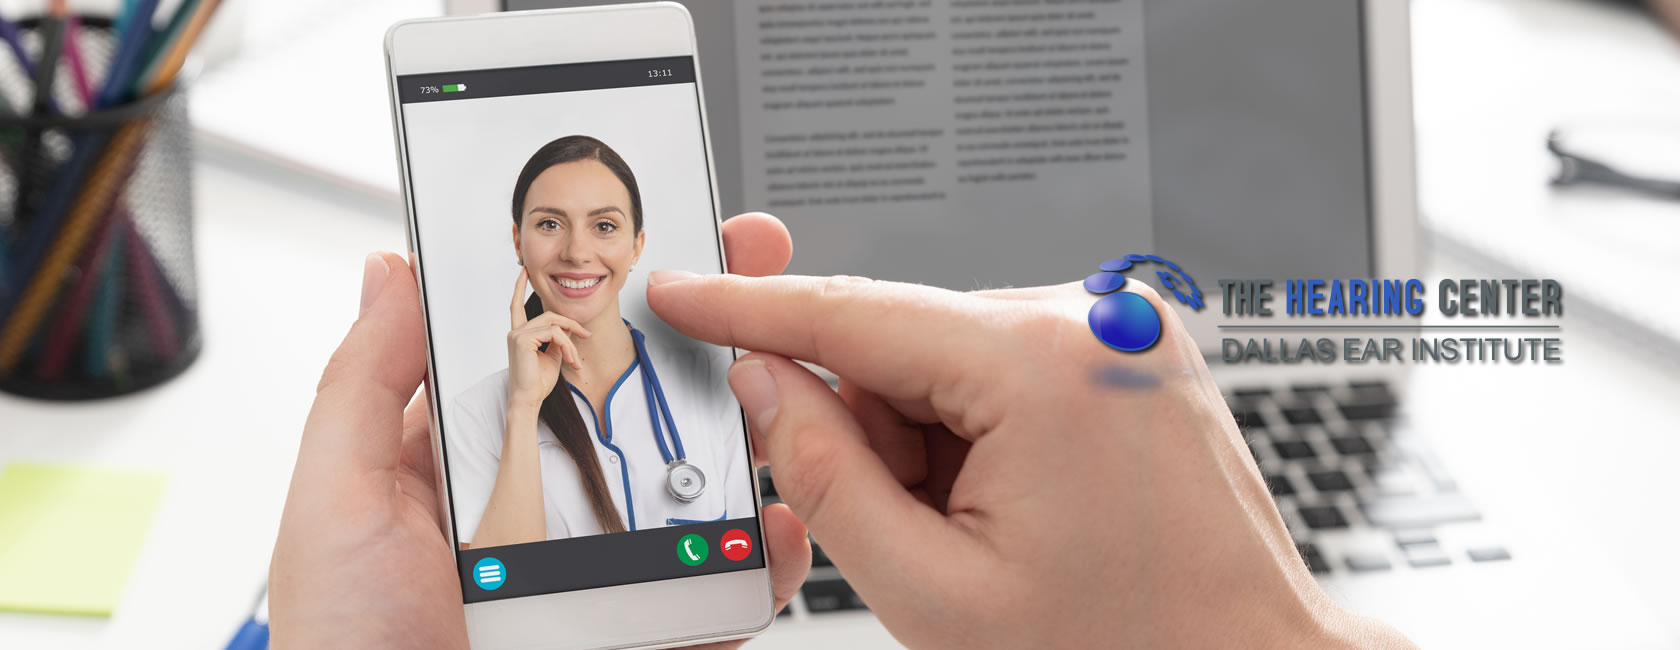 Telemedicine Office Video Visits at Dallas Ear Institute